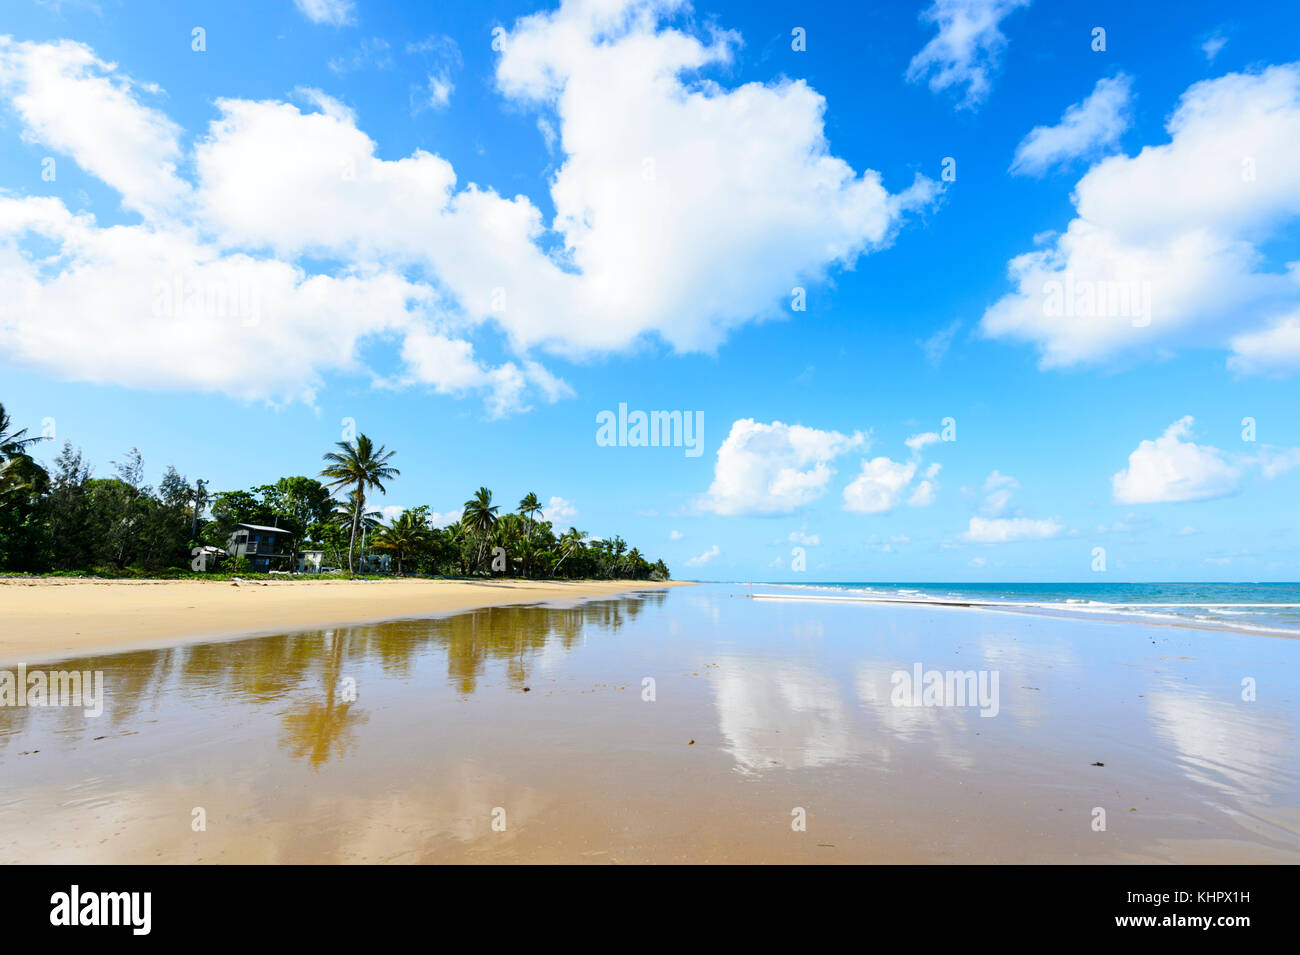 Palm-fringed deserted sandy beach of South Mission Beach on the Coral Sea, Far North Queensland, FNQ, Australia - Stock Image